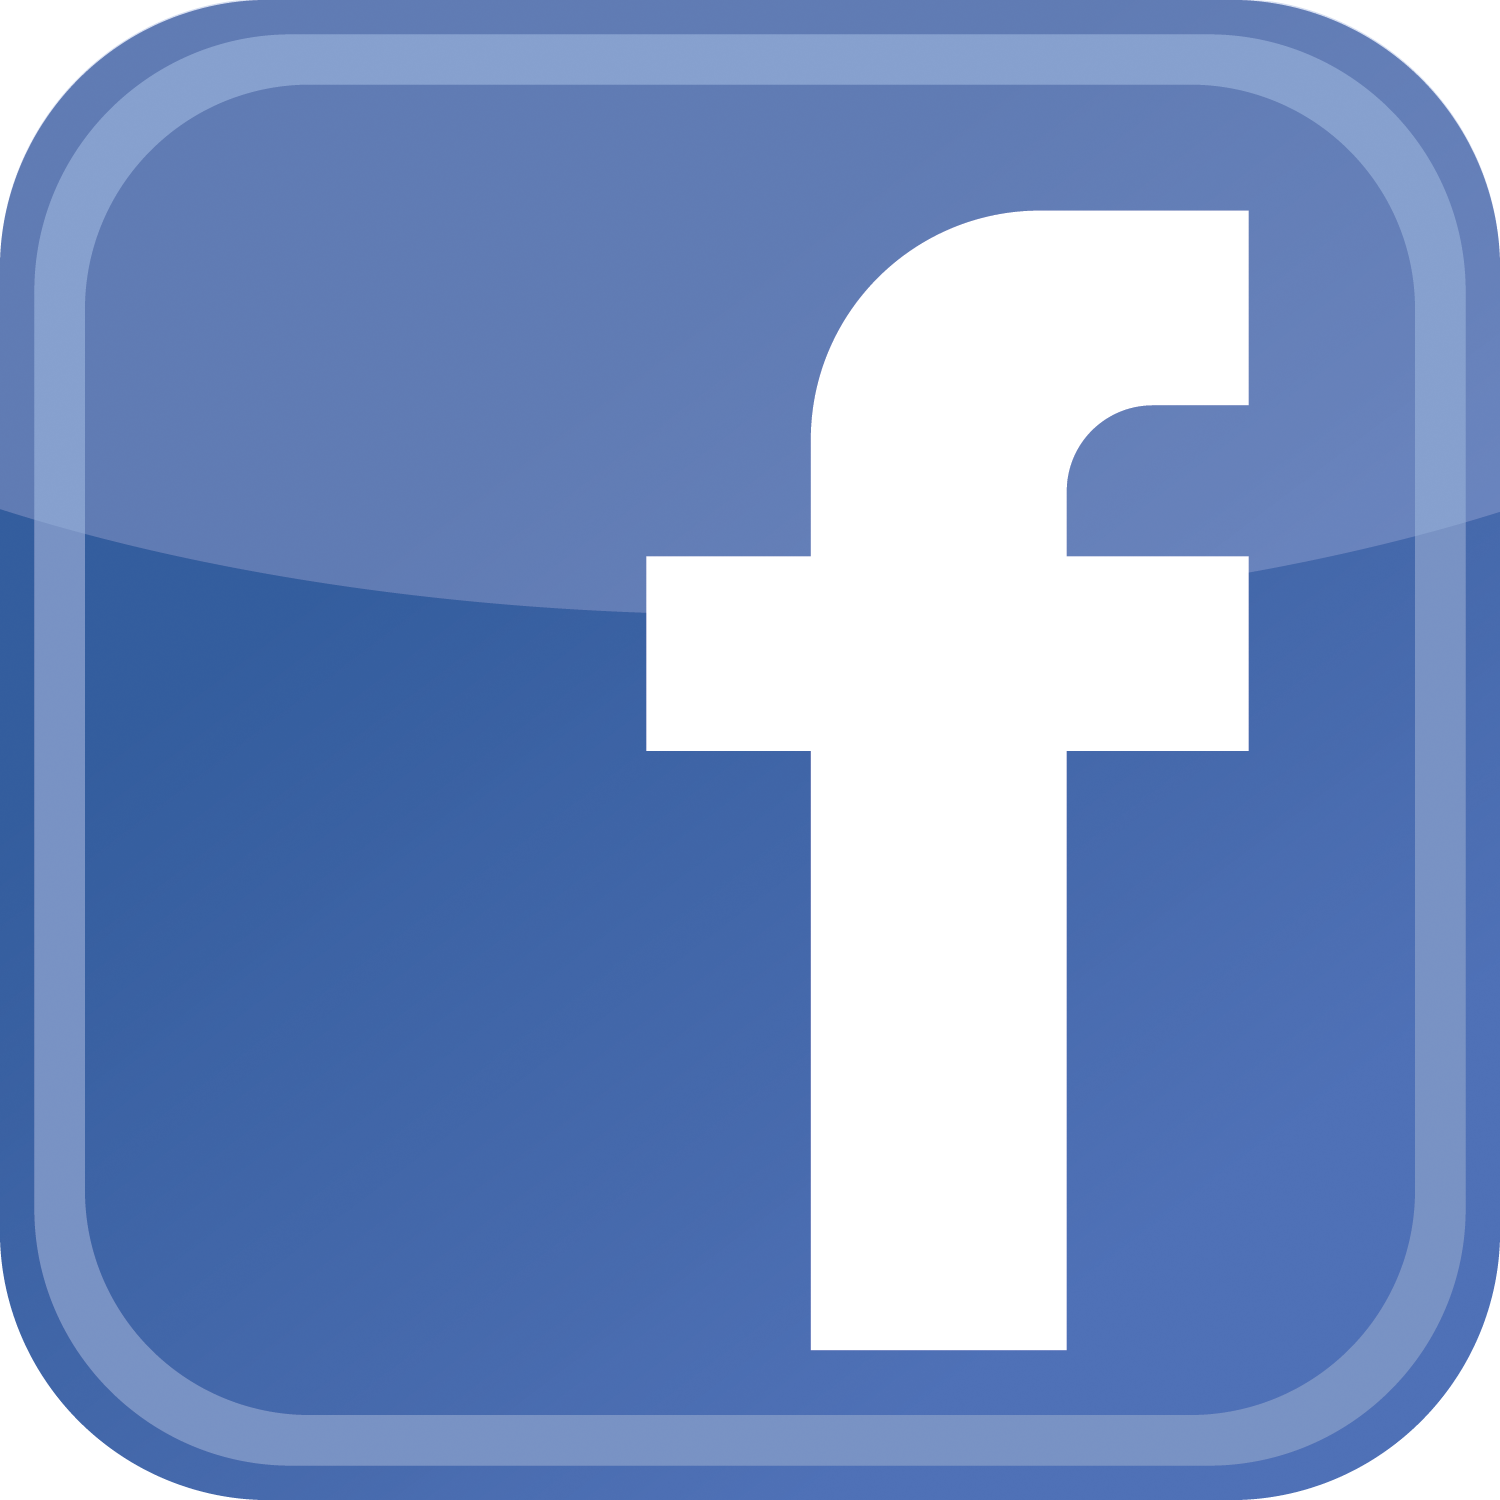 Messenger Icon Facebook Logo PNG Image High Quality PNG Image